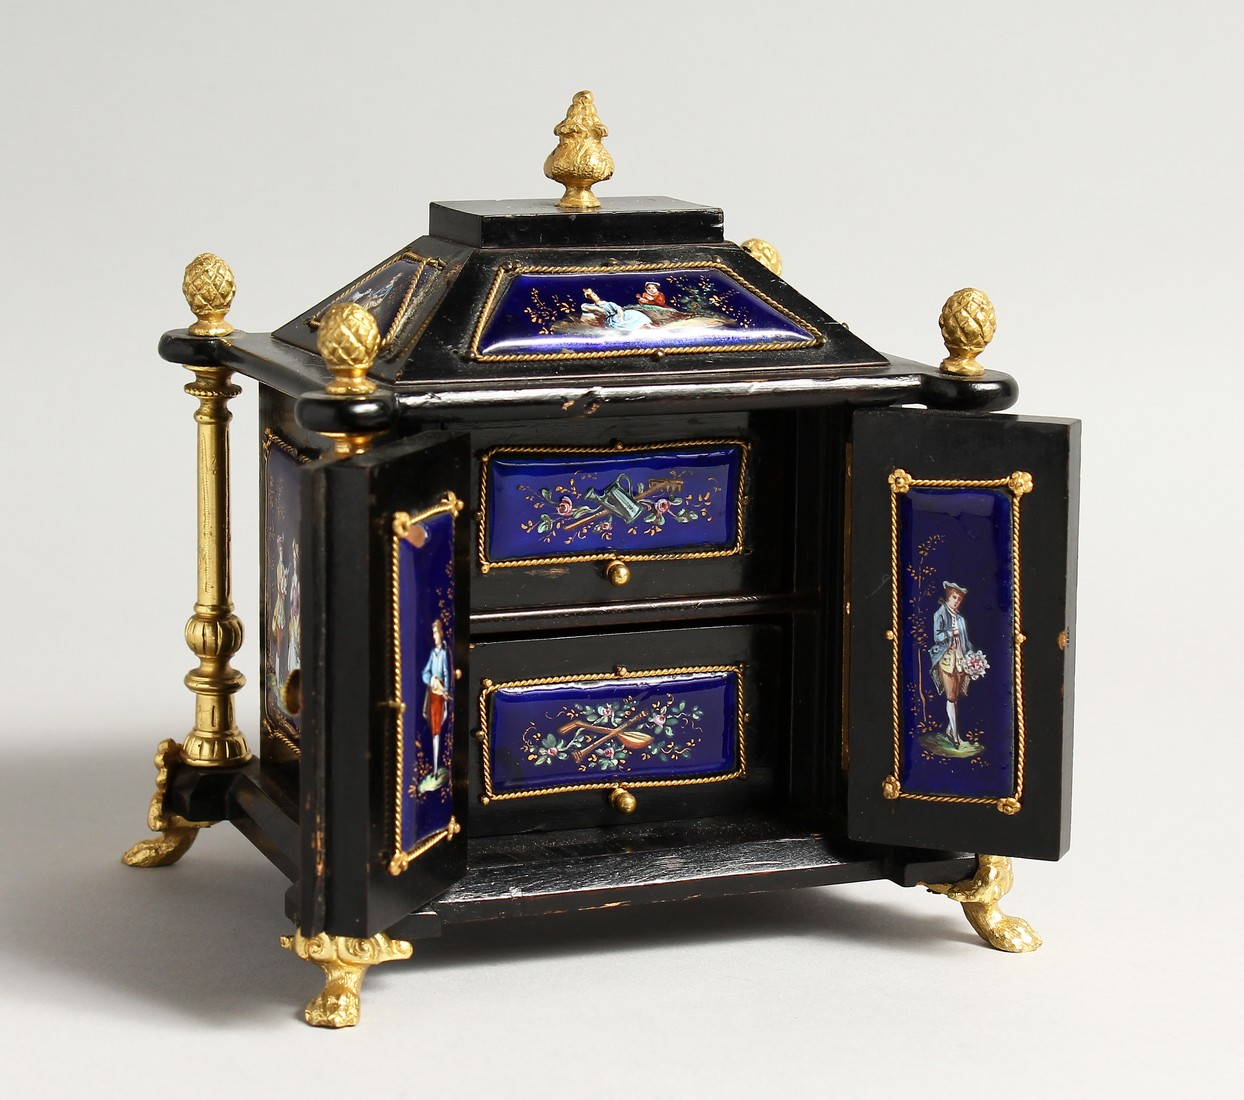 A VERY GOOD 19TH CENTURY LIMOGES CASKET with painted enamel panel, the door opening to reveal 2